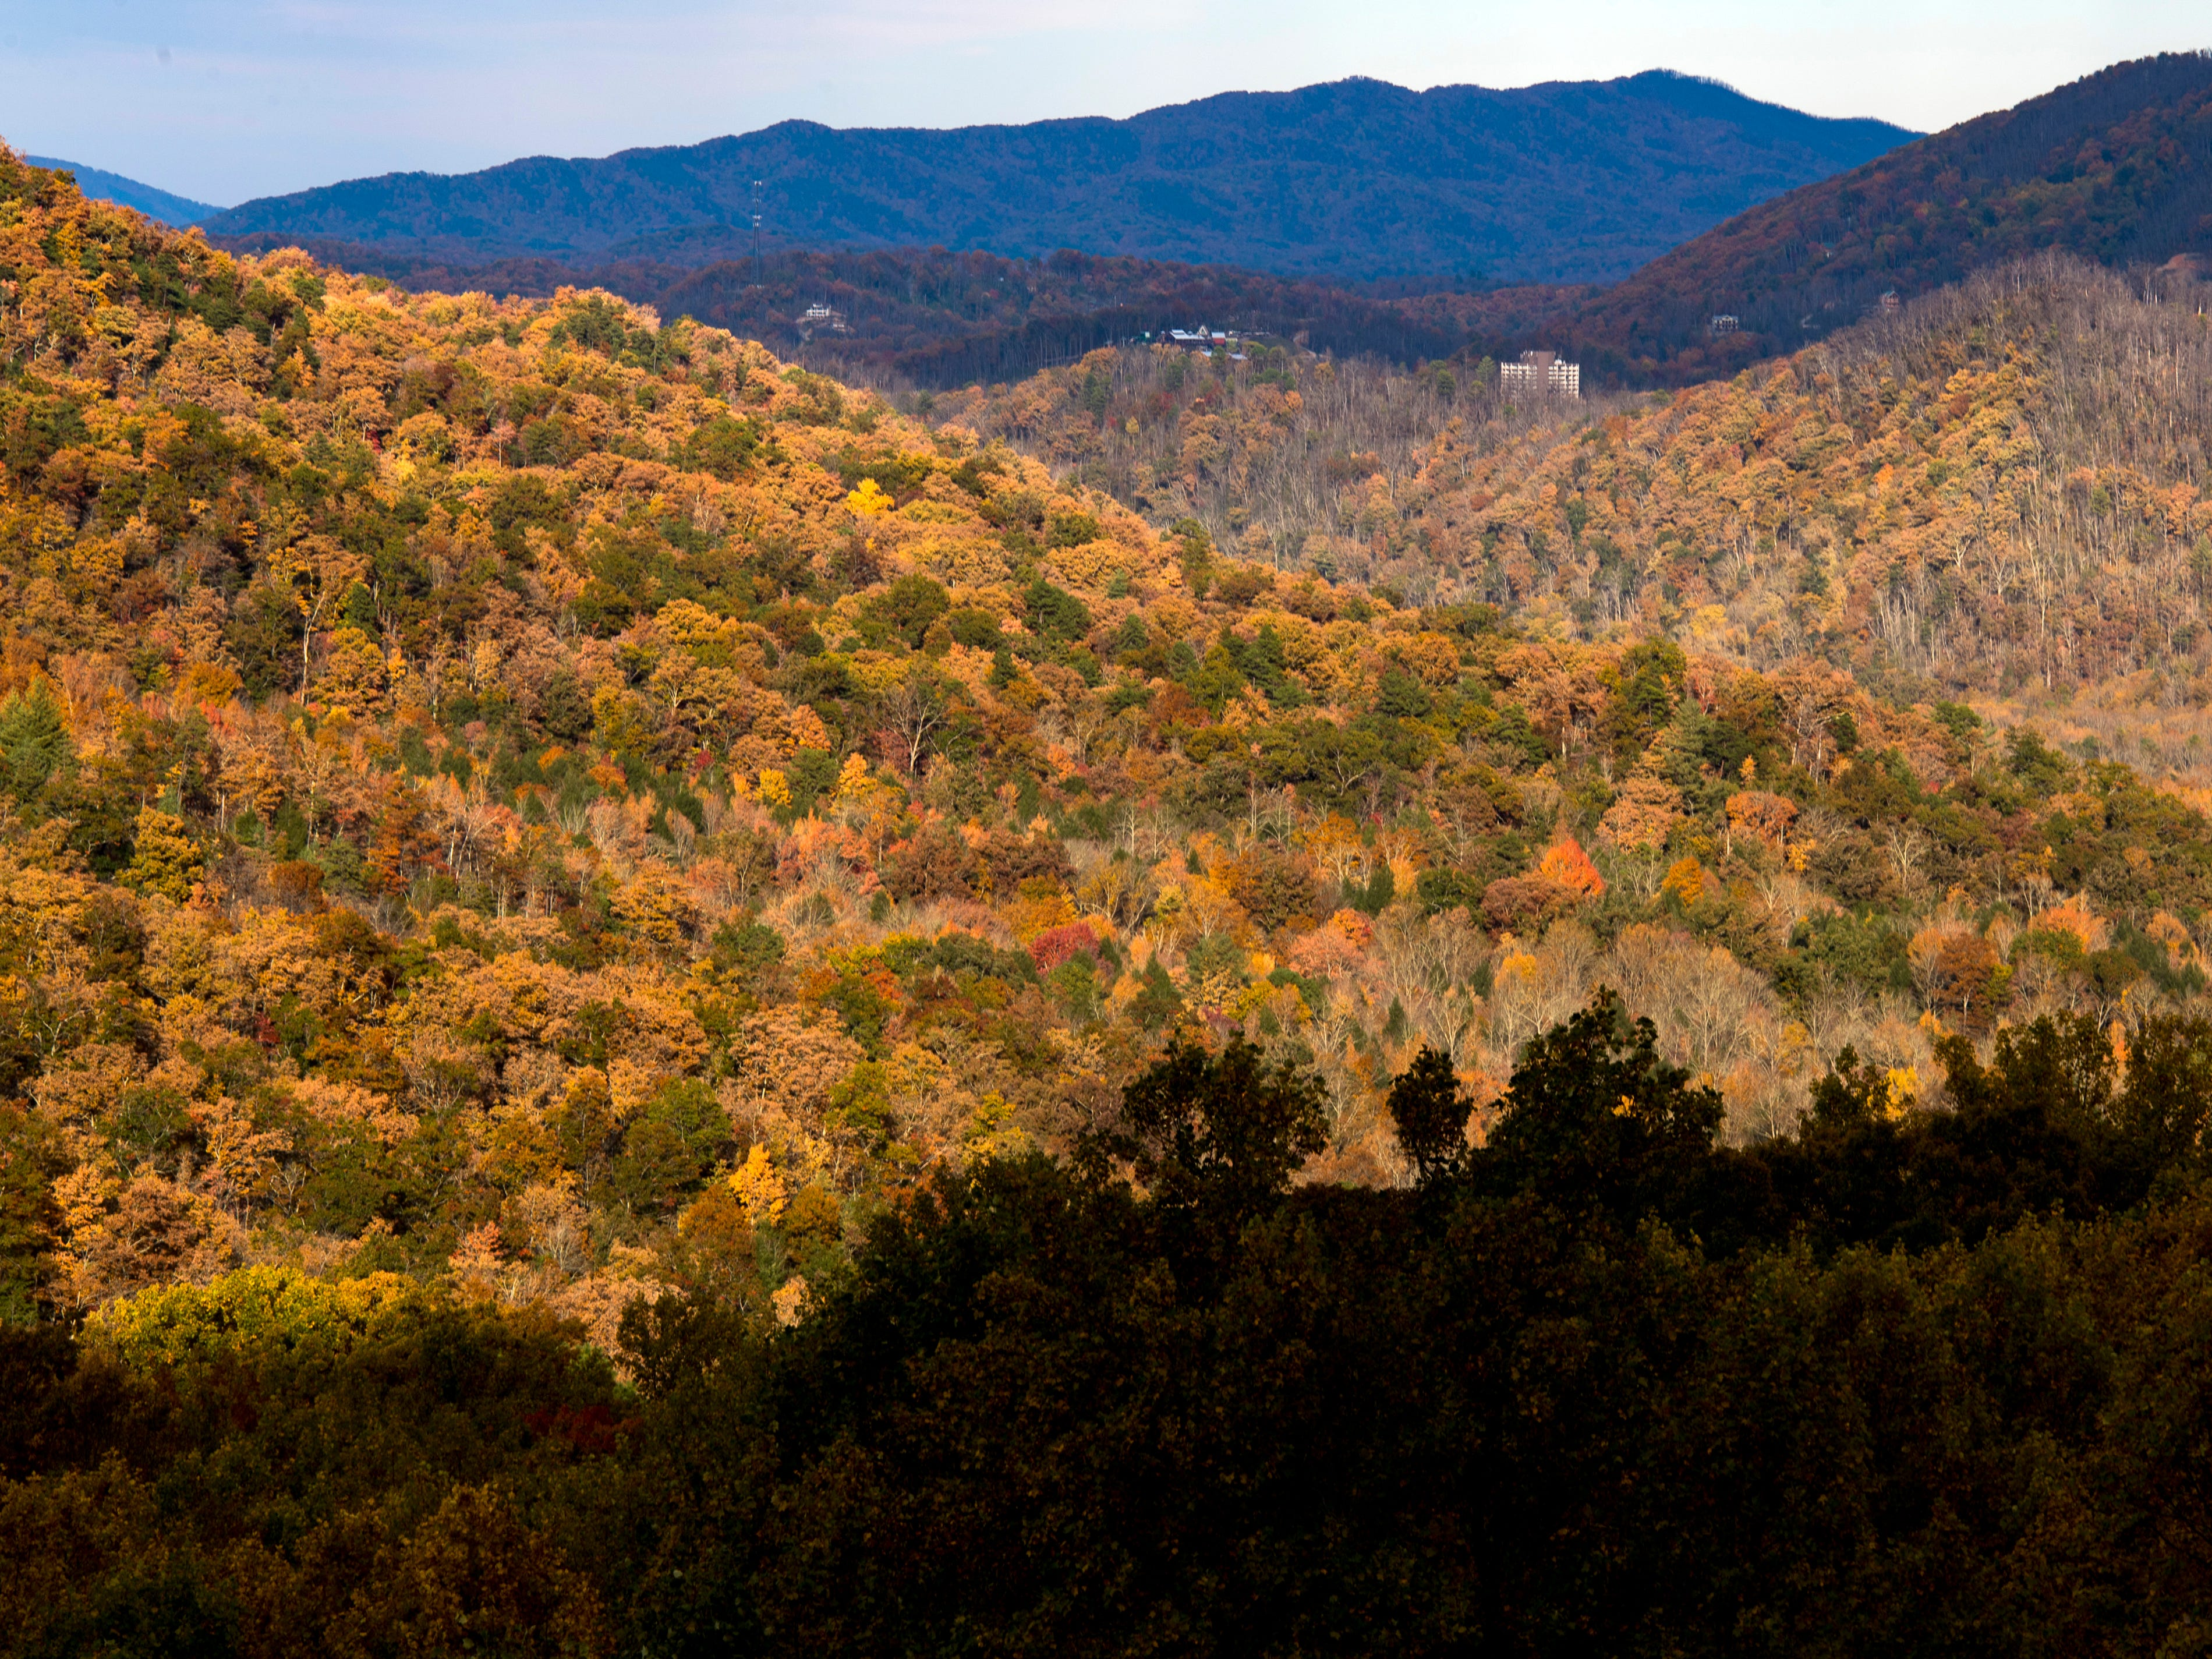 Fall foliage looking toward Gatlinburg in the Great Smoky Mountains National Park on Sunday, November 4, 2018.